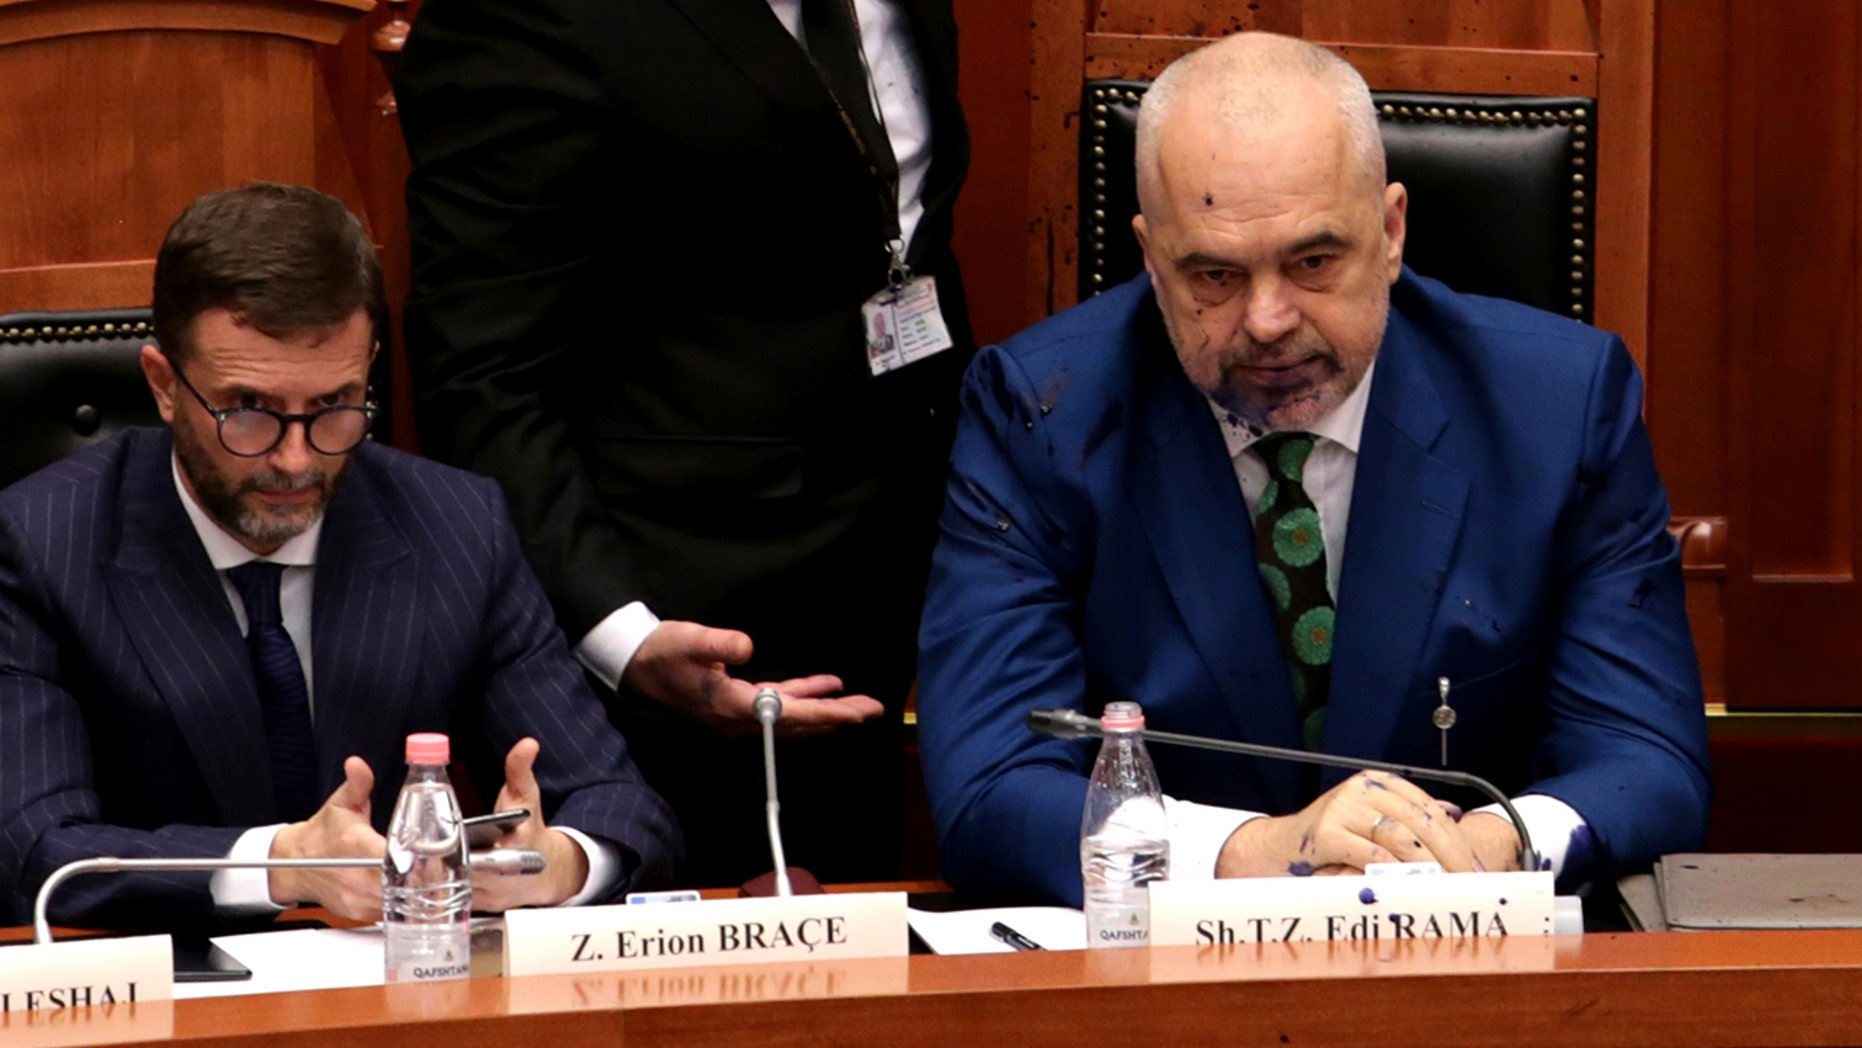 Albania's Prime Minister Edi Rama (right) looks on after liquid substance was thrown at him by members of the opposition during parliamentary session in Tirana, Albania, February 14, 2019.